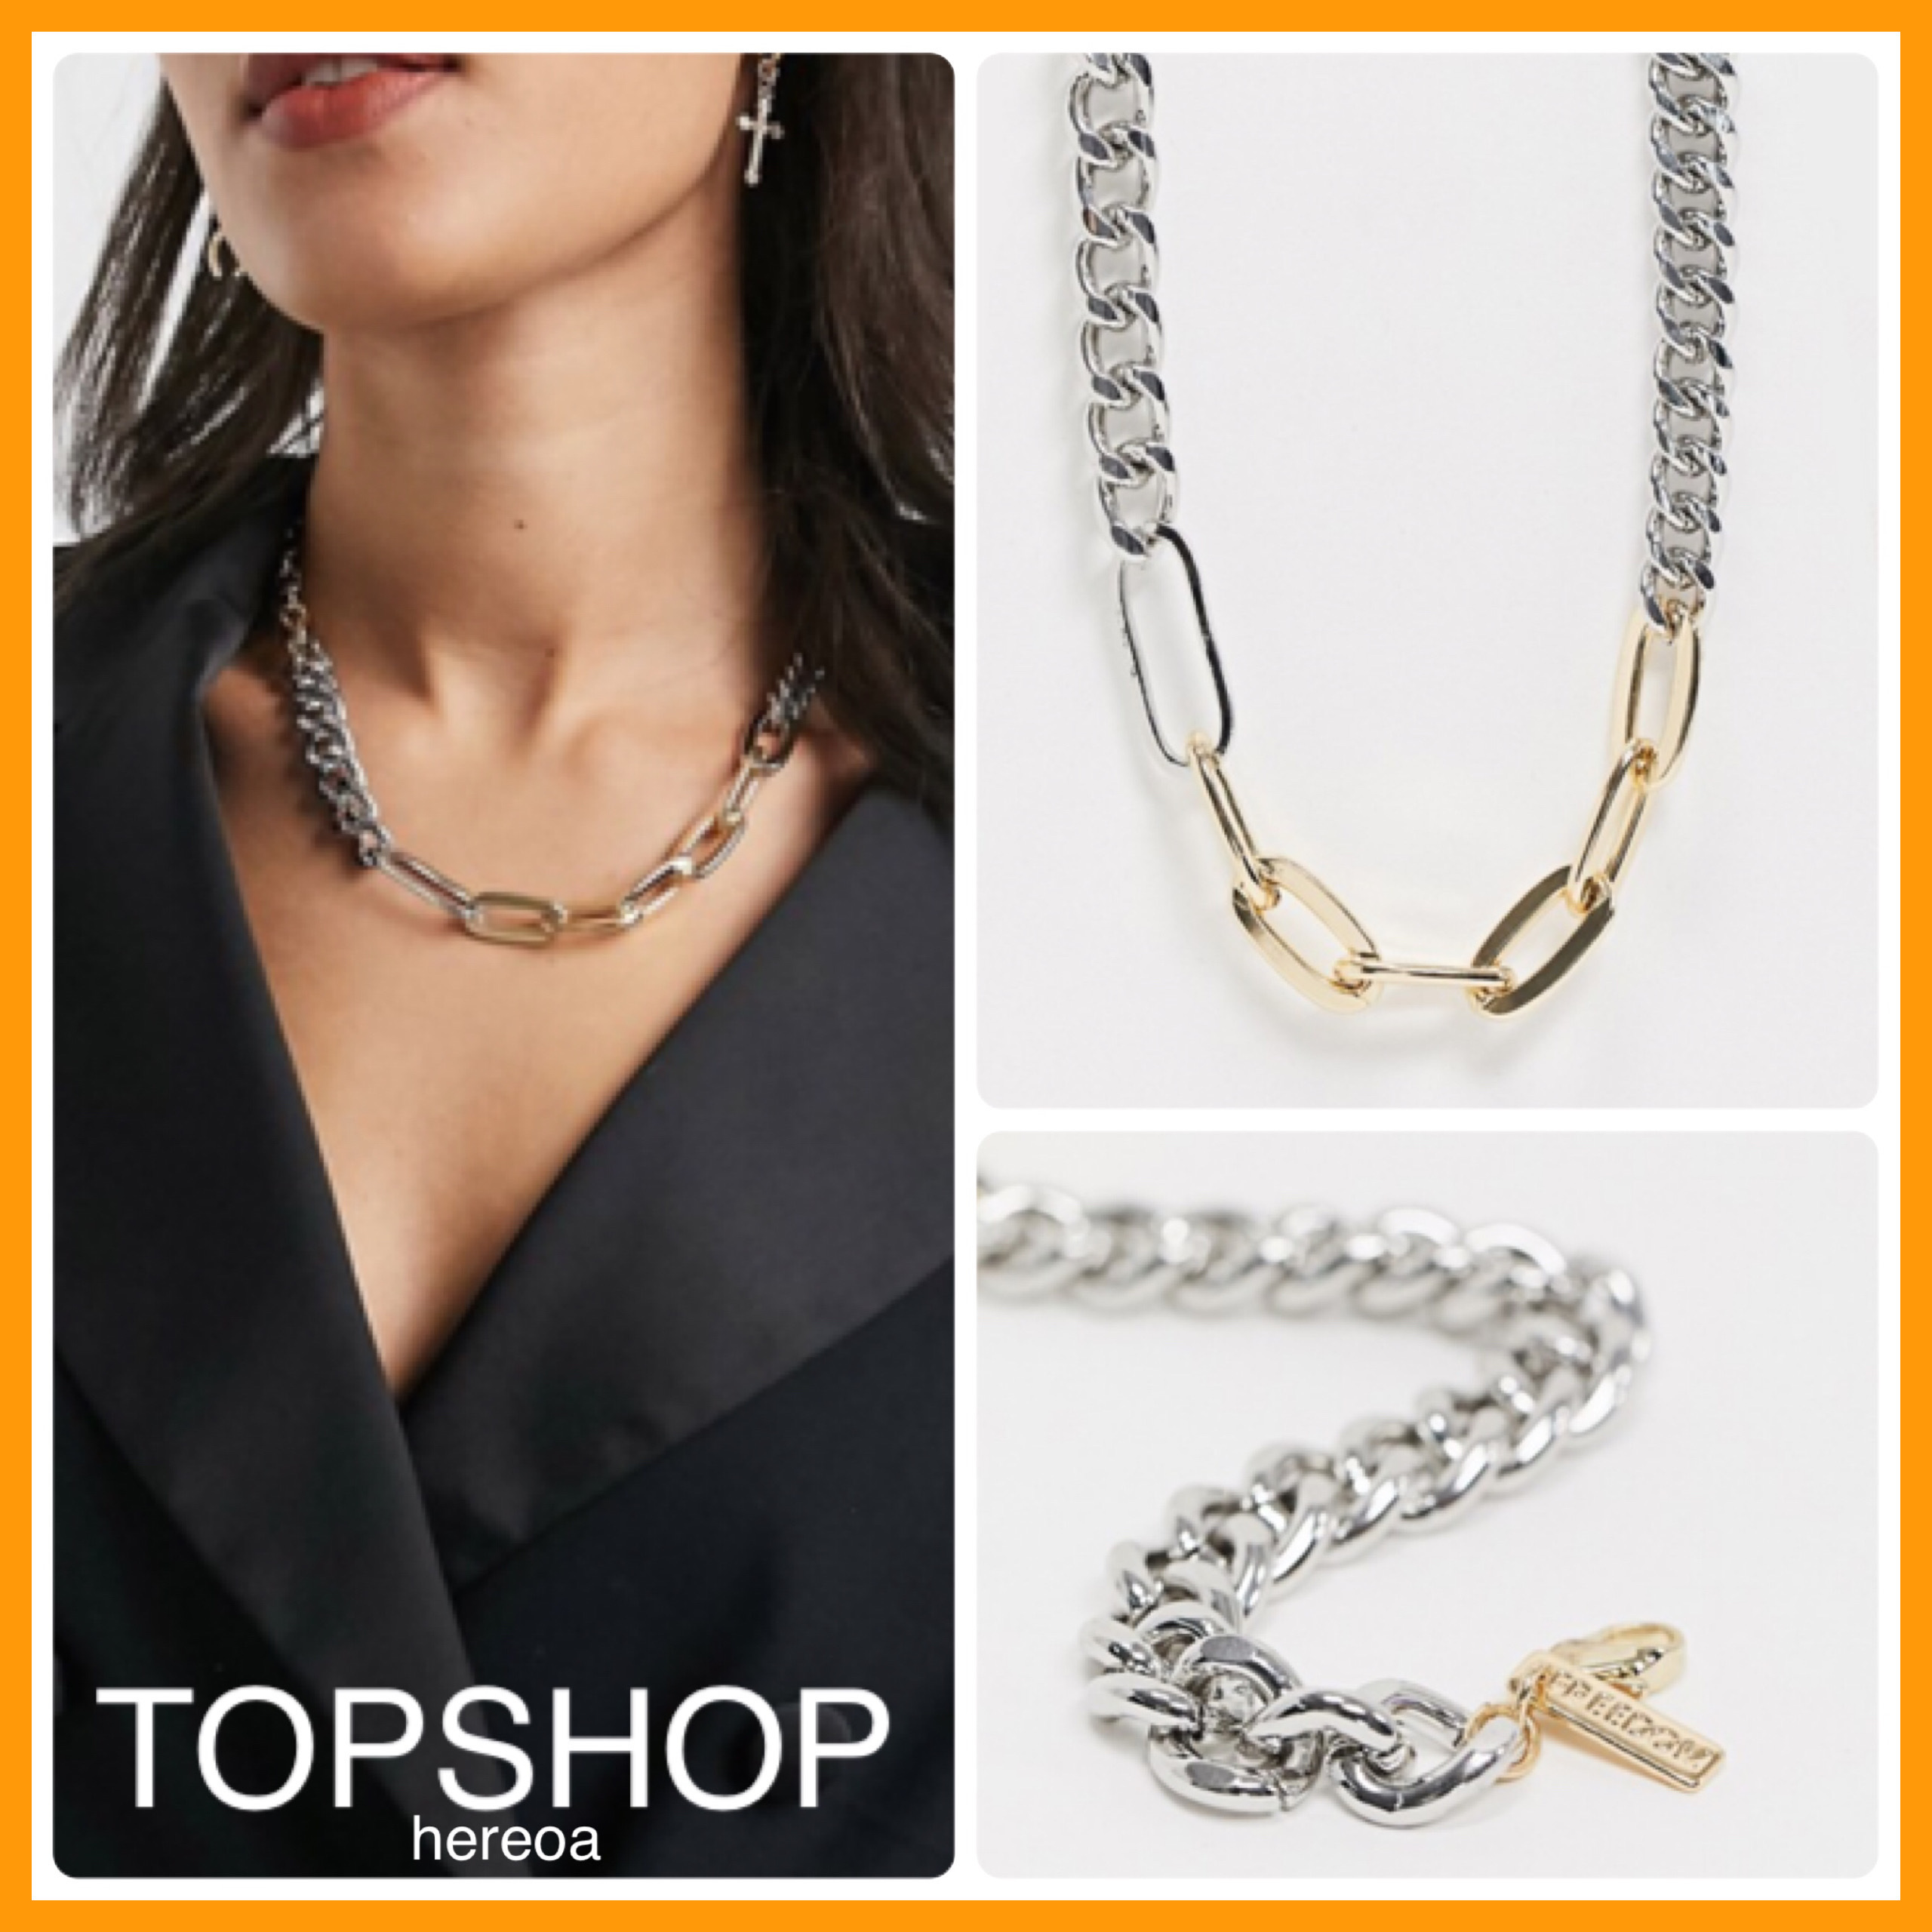 shop necessary clothing topshop